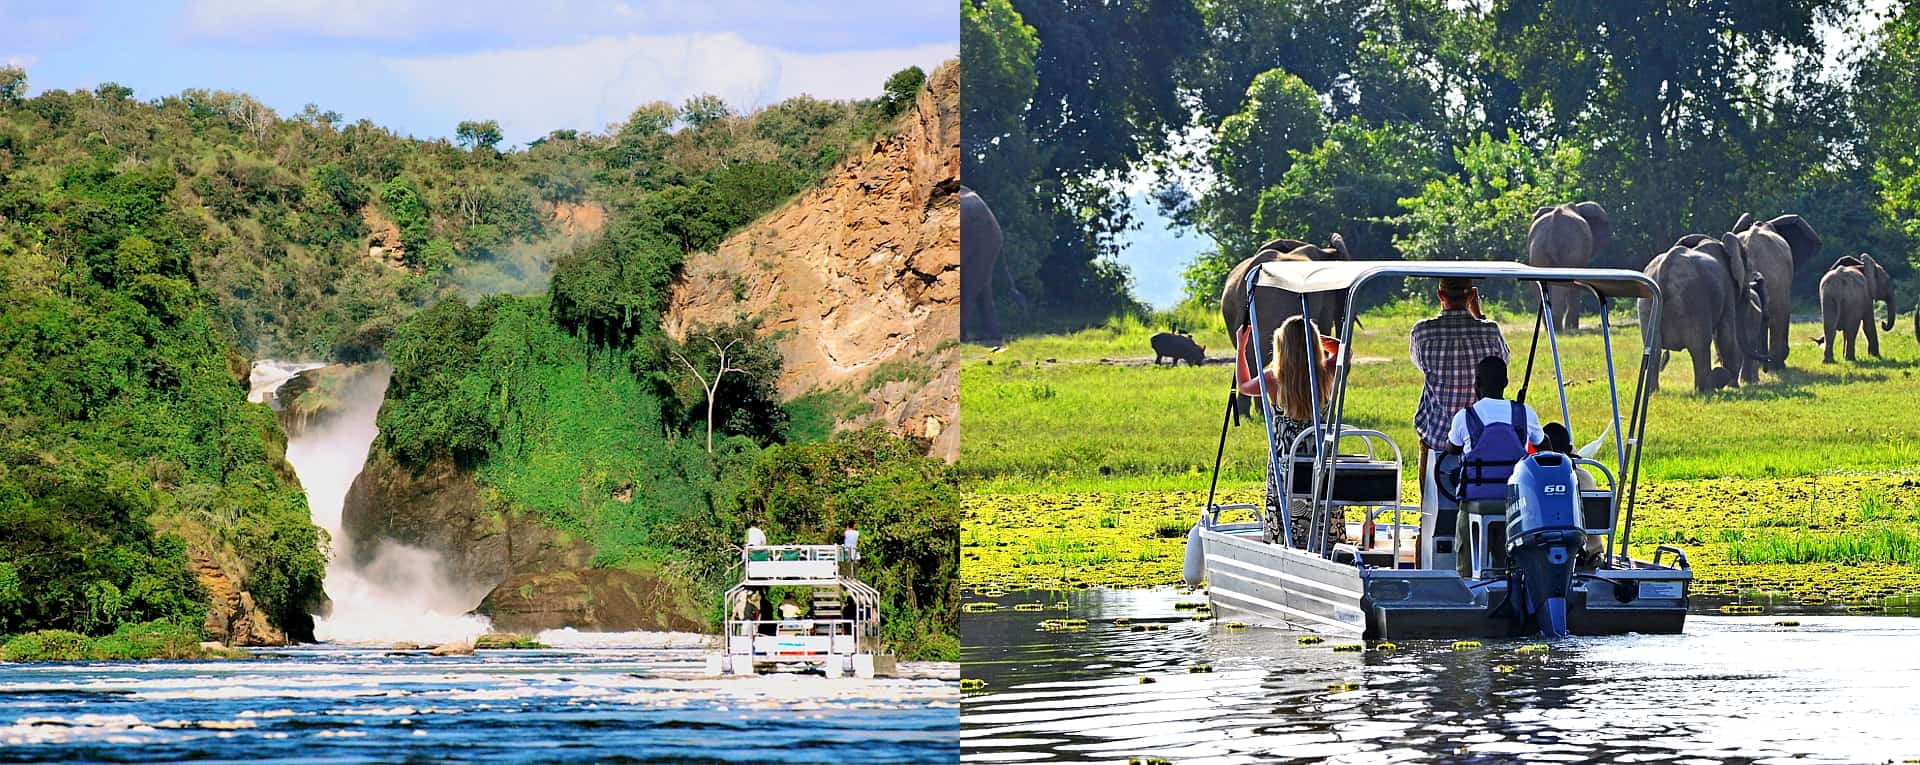 Lavish Top Views Of The Iconic Nile At Murchison Falls